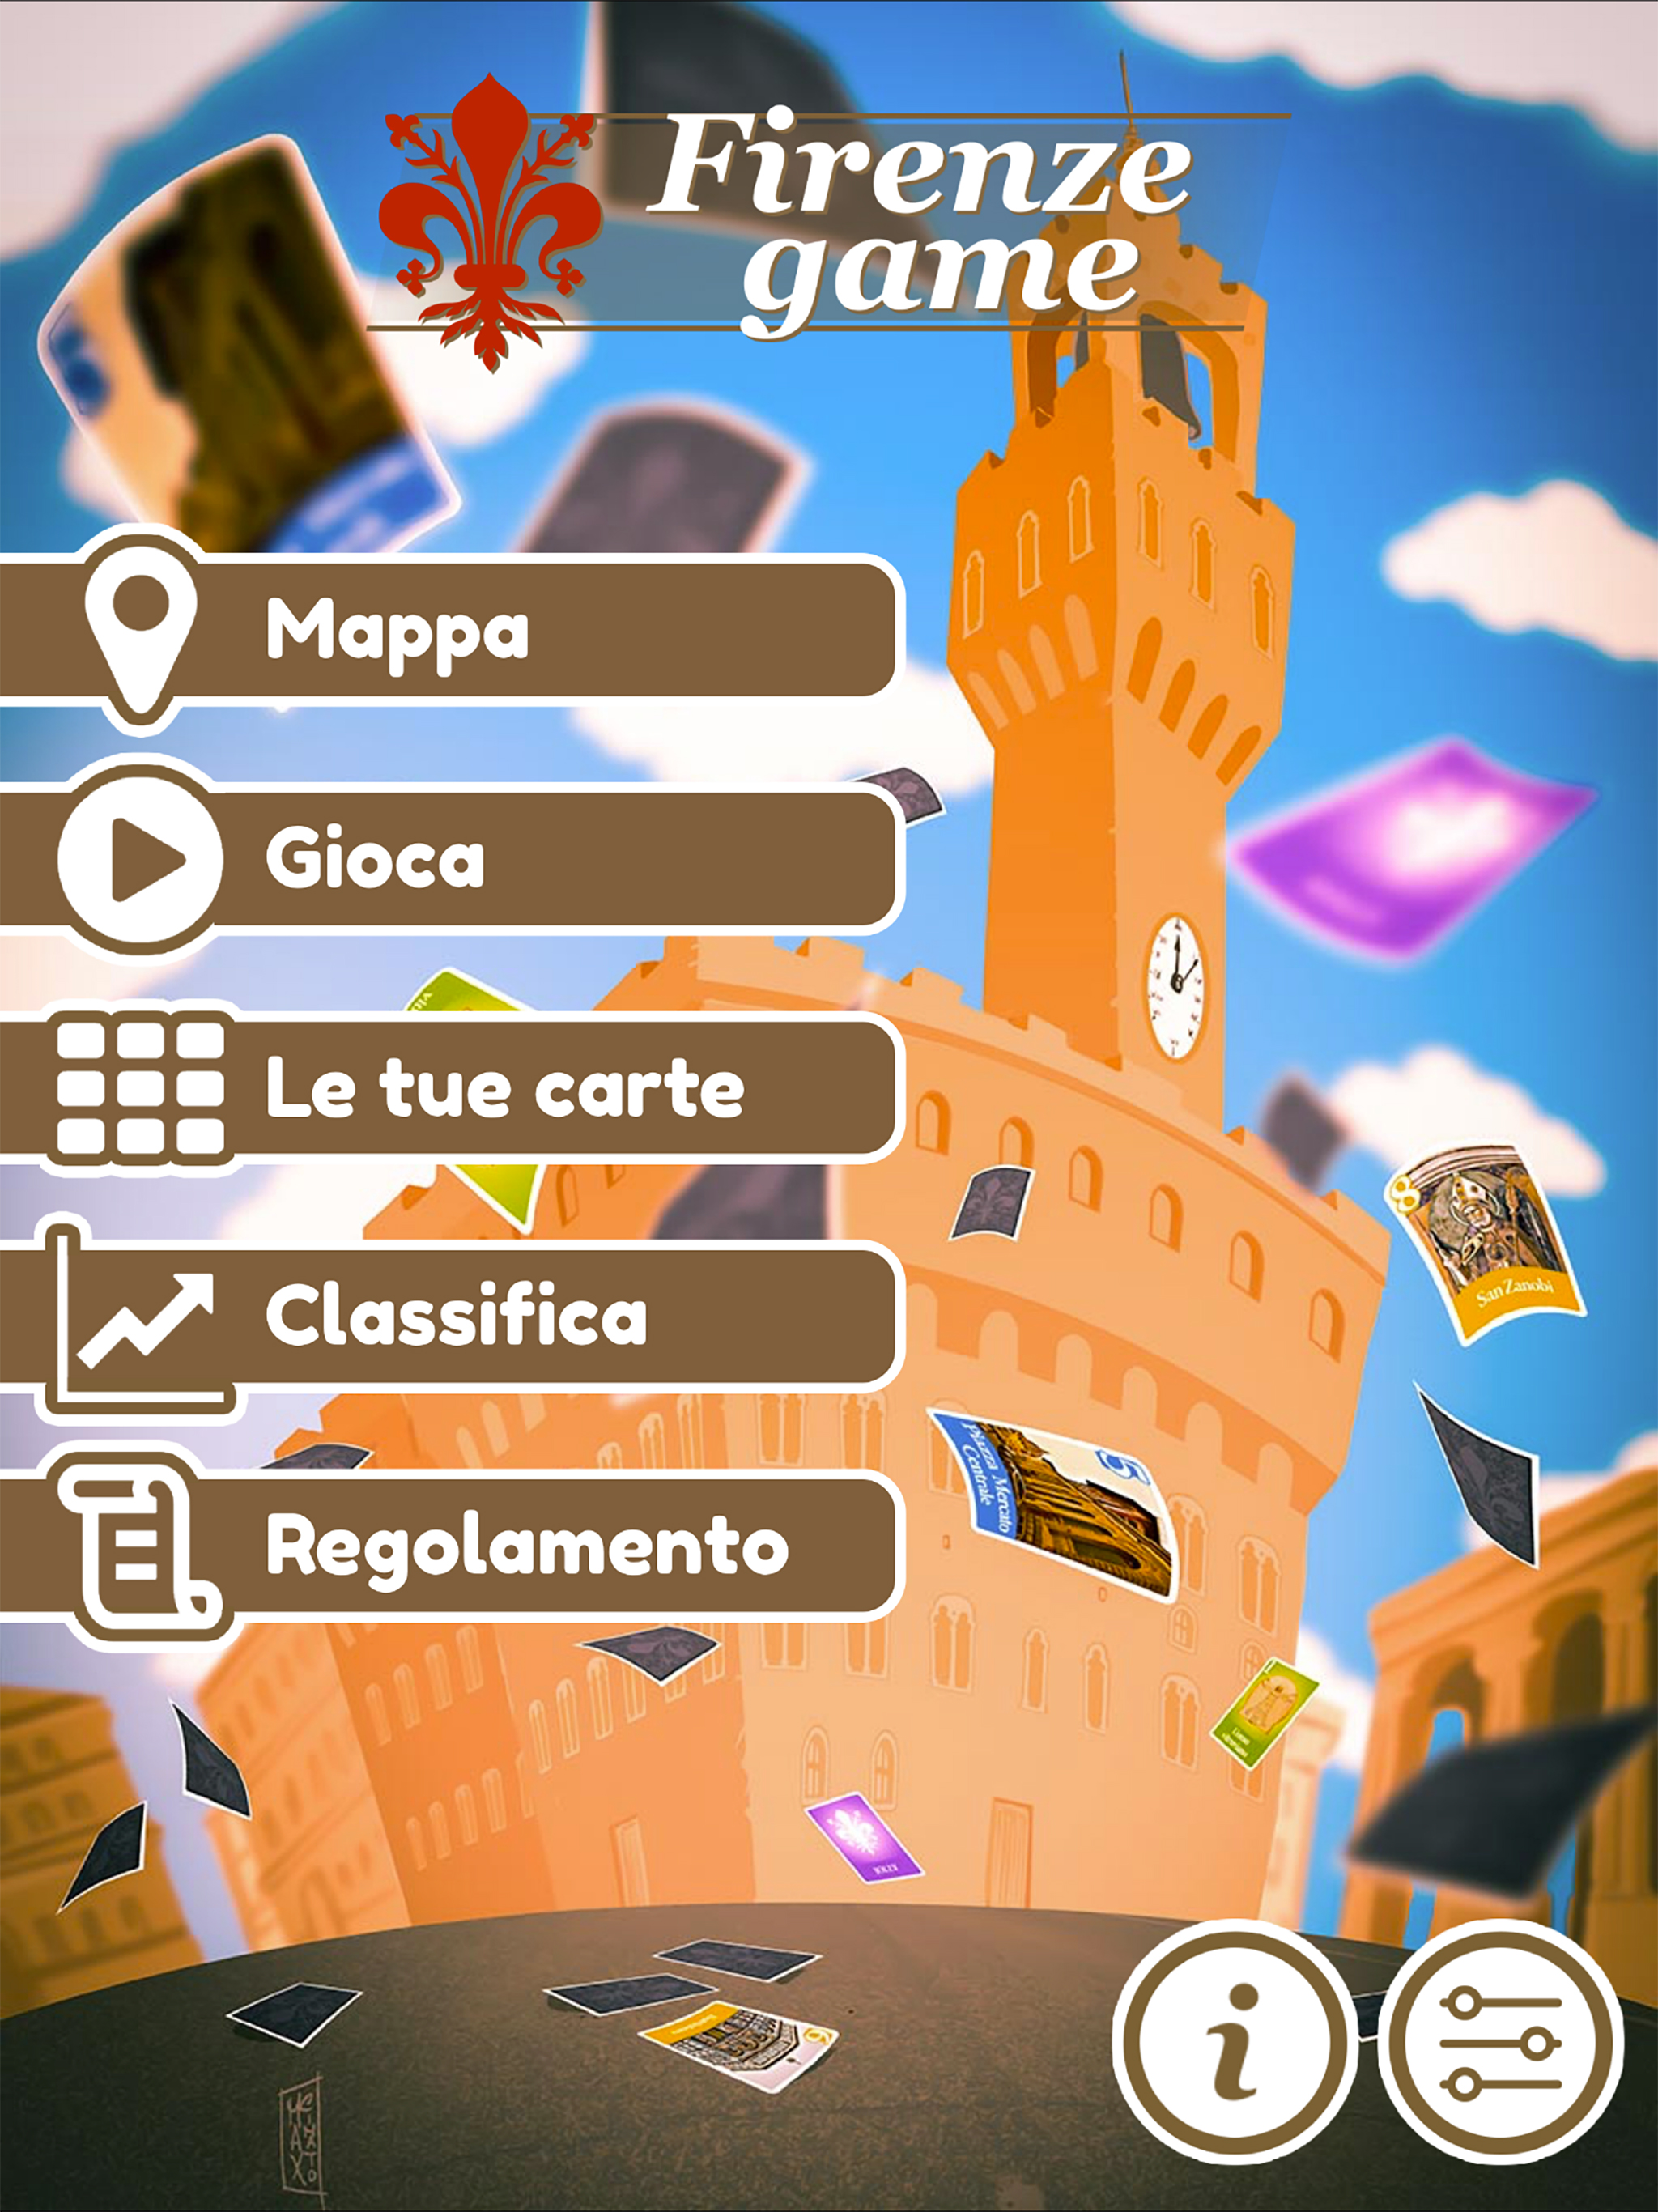 Firenze Game menu